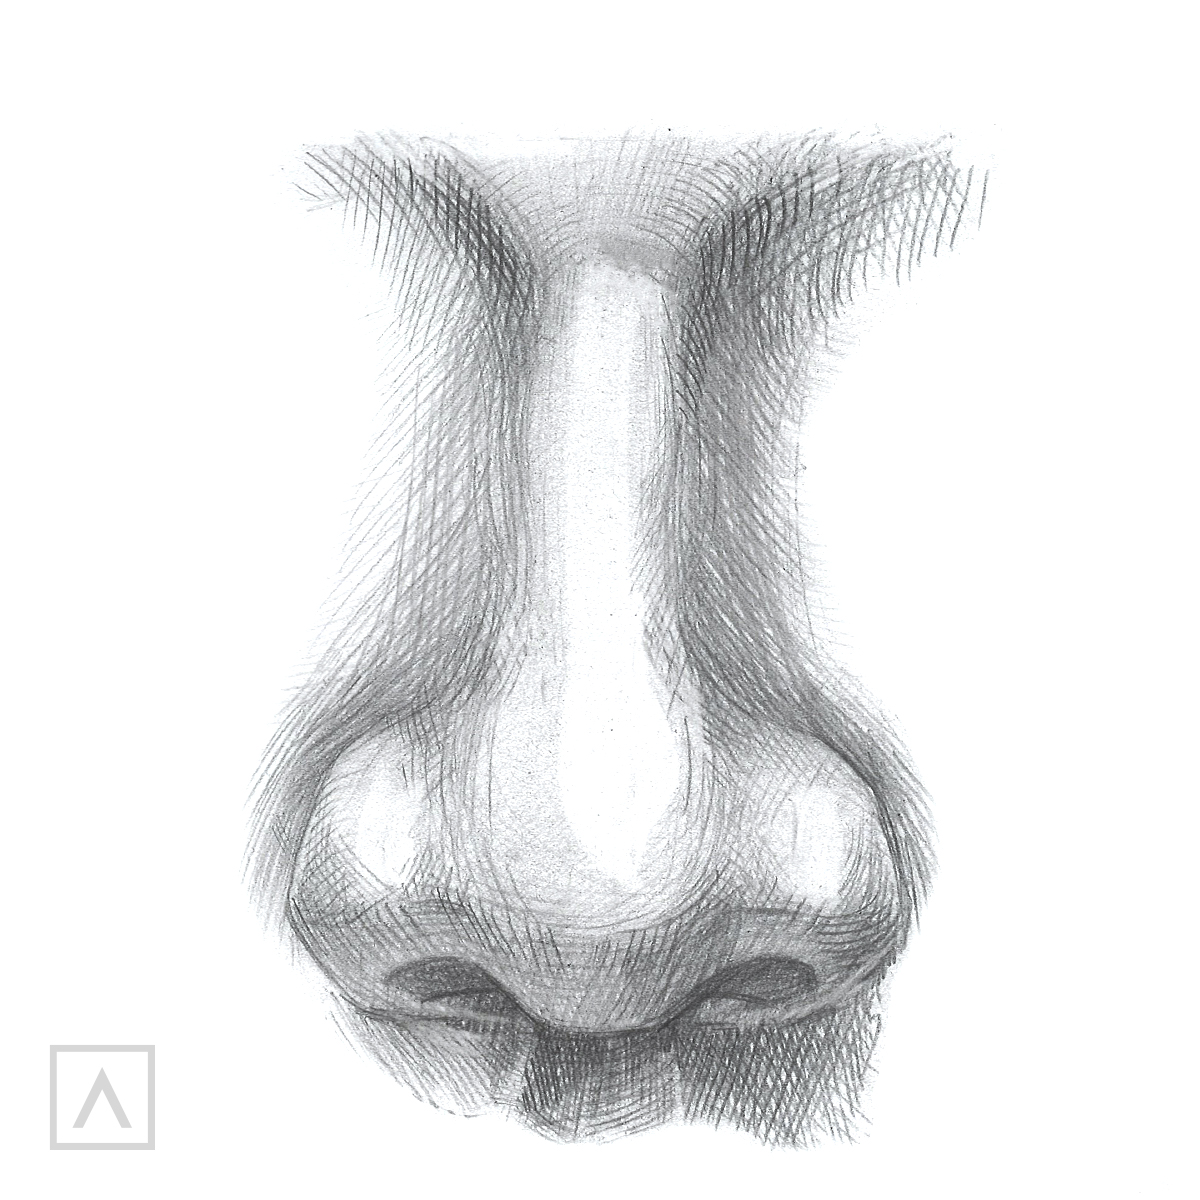 Nose drawing Step 5